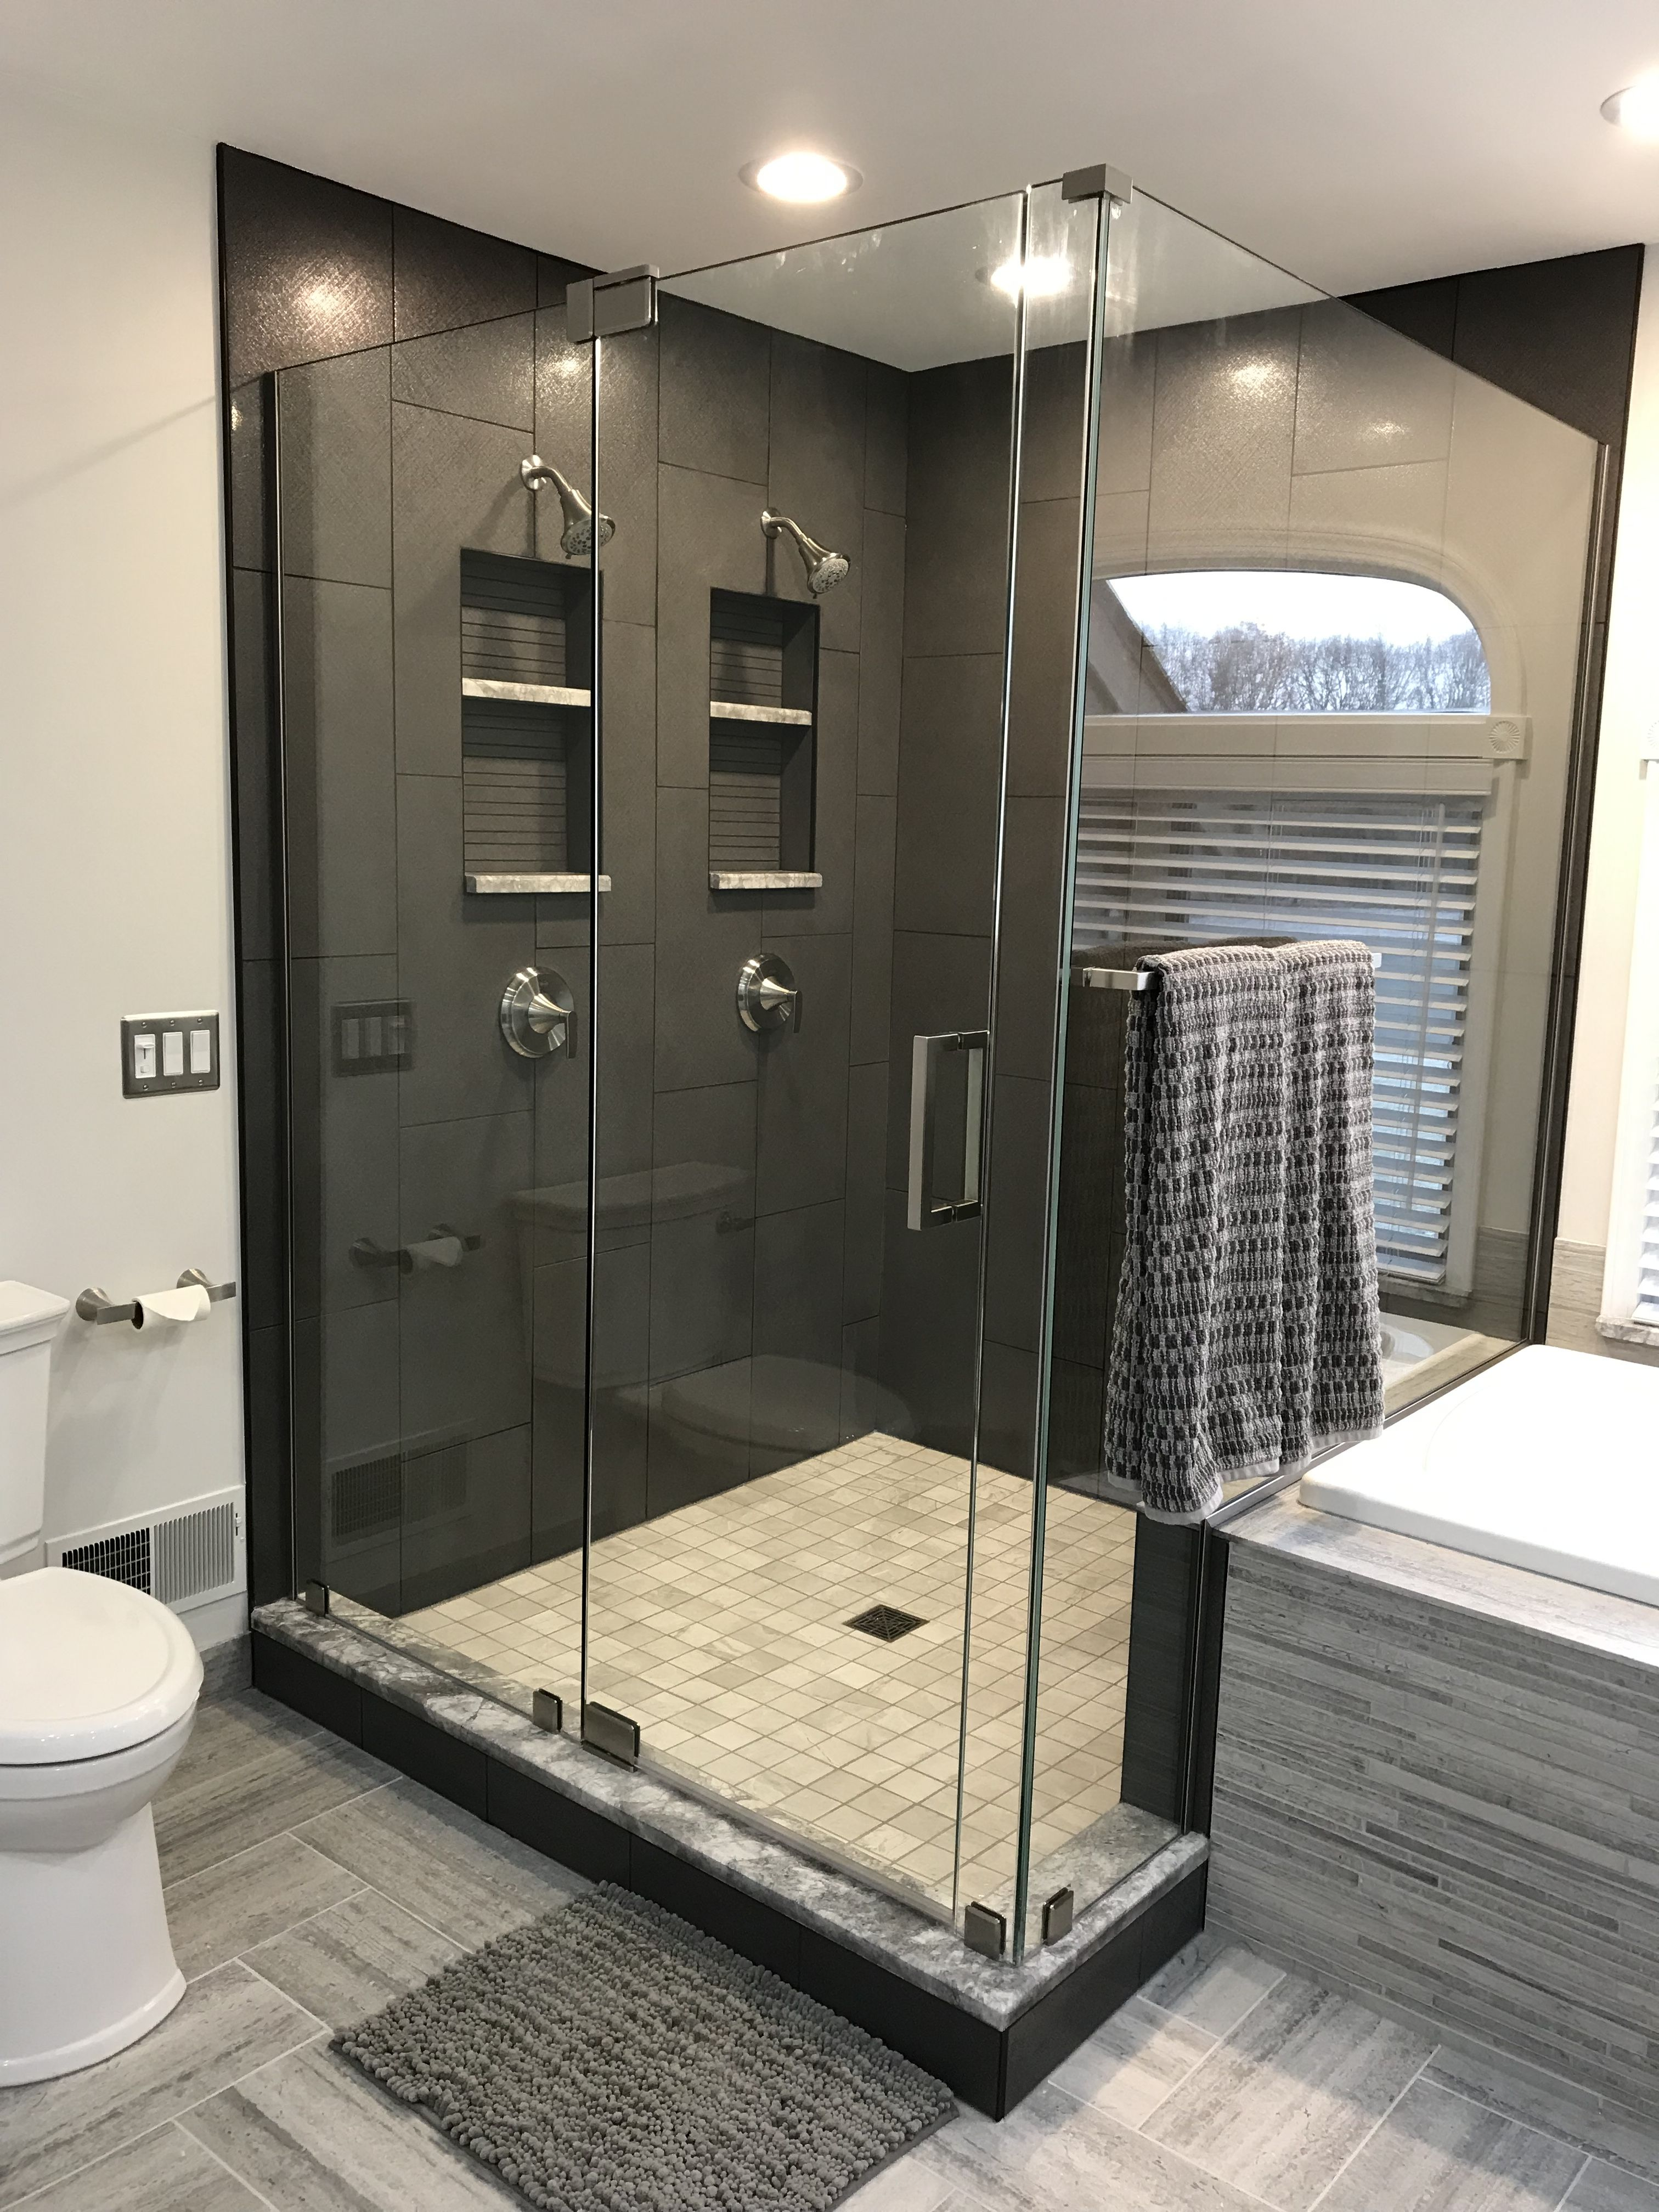 Harley Lux Graphite Shower Wall Porcelain Tile With Black Onyx